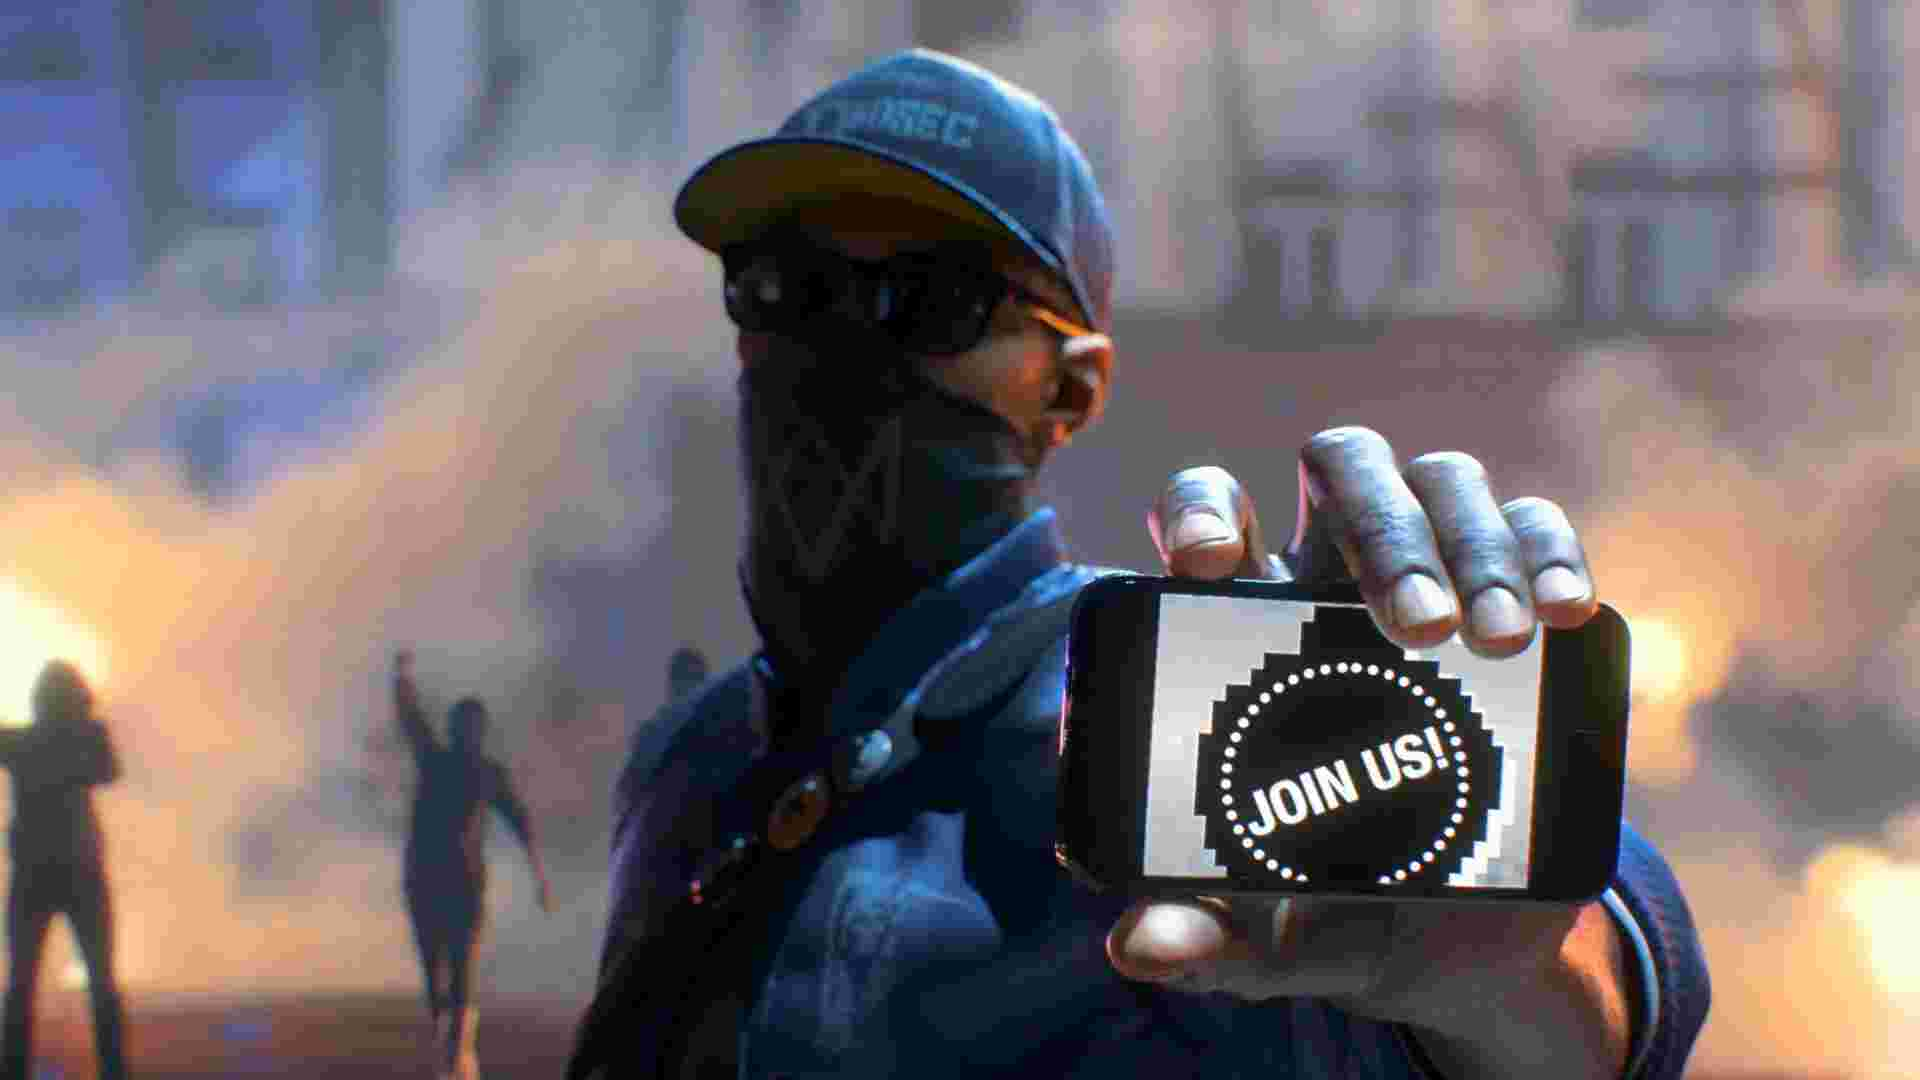 watch-dogs-2-full-stream-ss-1465411247058